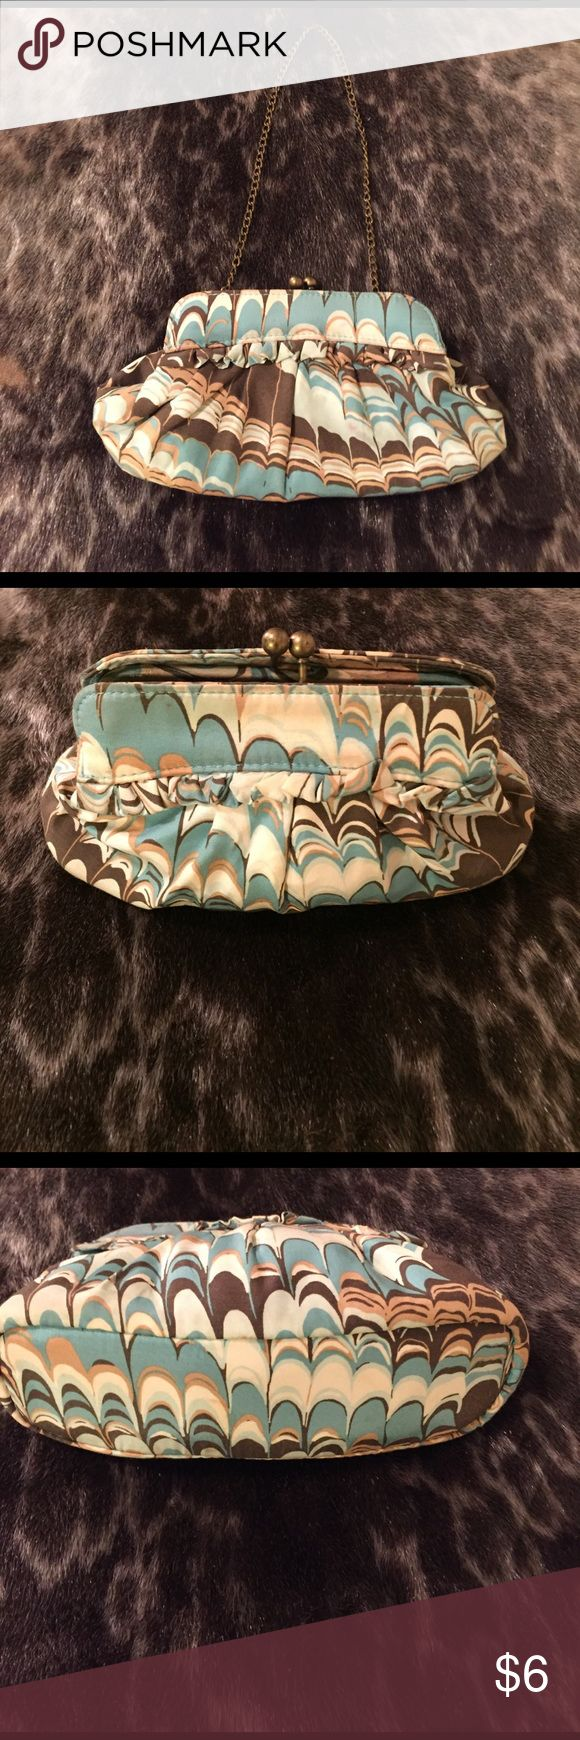 Gap Mini purse/clutch Brown,tan,turquoise and cream purse/clutch. Perfect for spring or summer! Goes with anything neutral GAP Bags Mini Bags